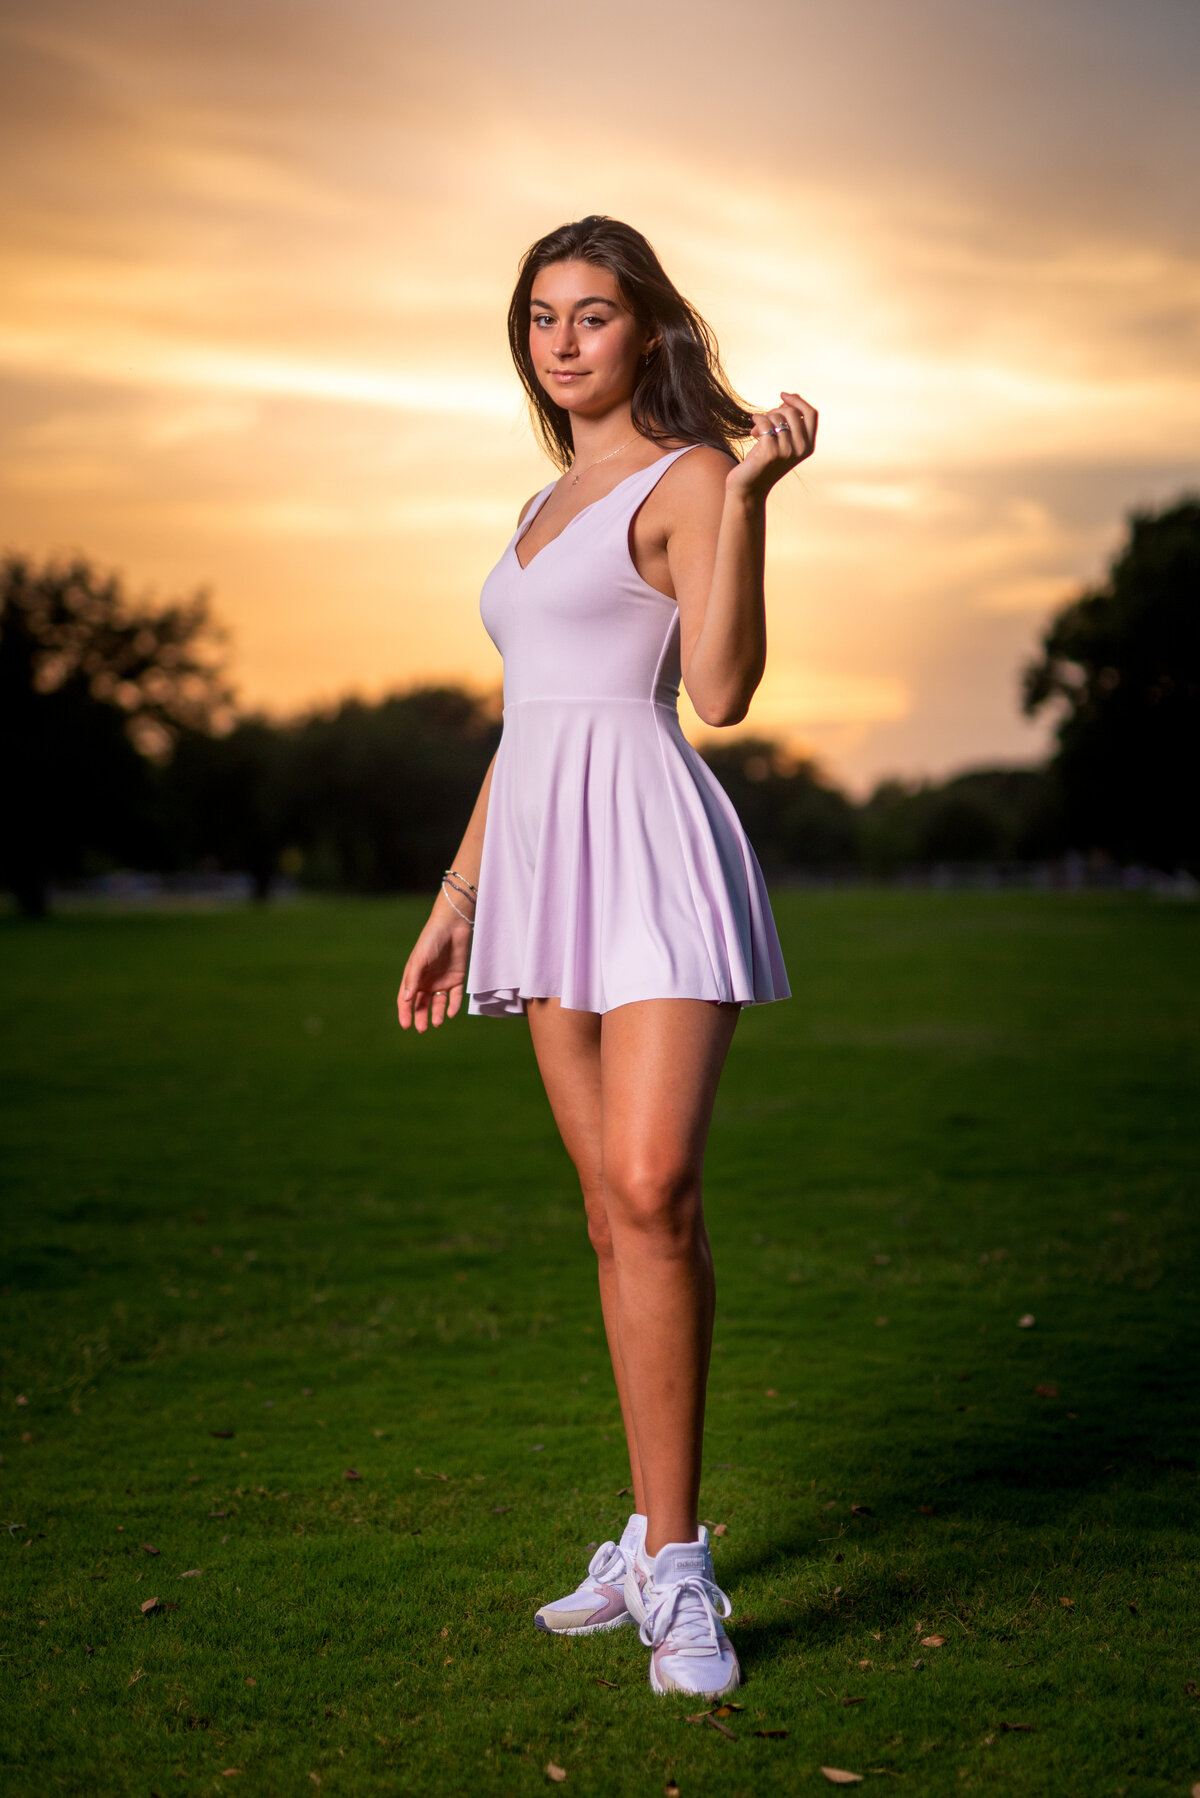 06-29-19-carly-adams-auditorium-shores-D800-0217-Edit